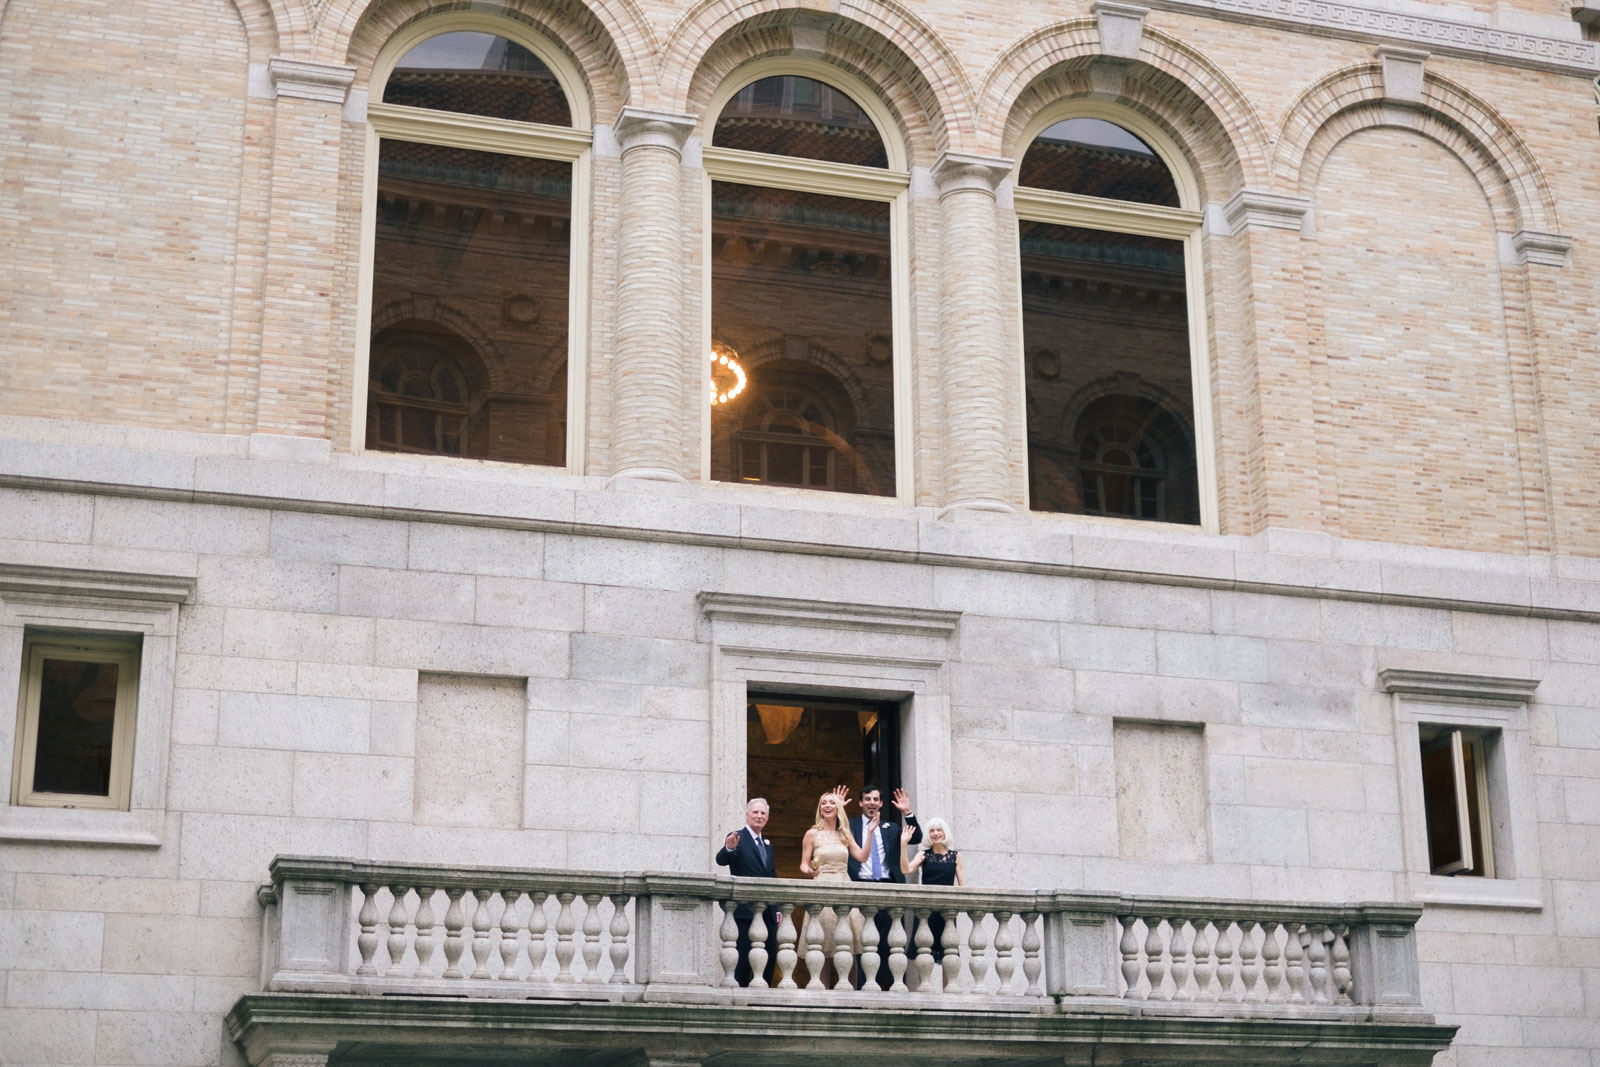 Wedding guests watch and cheer from balcony during formal portrait session at Boston Public Library